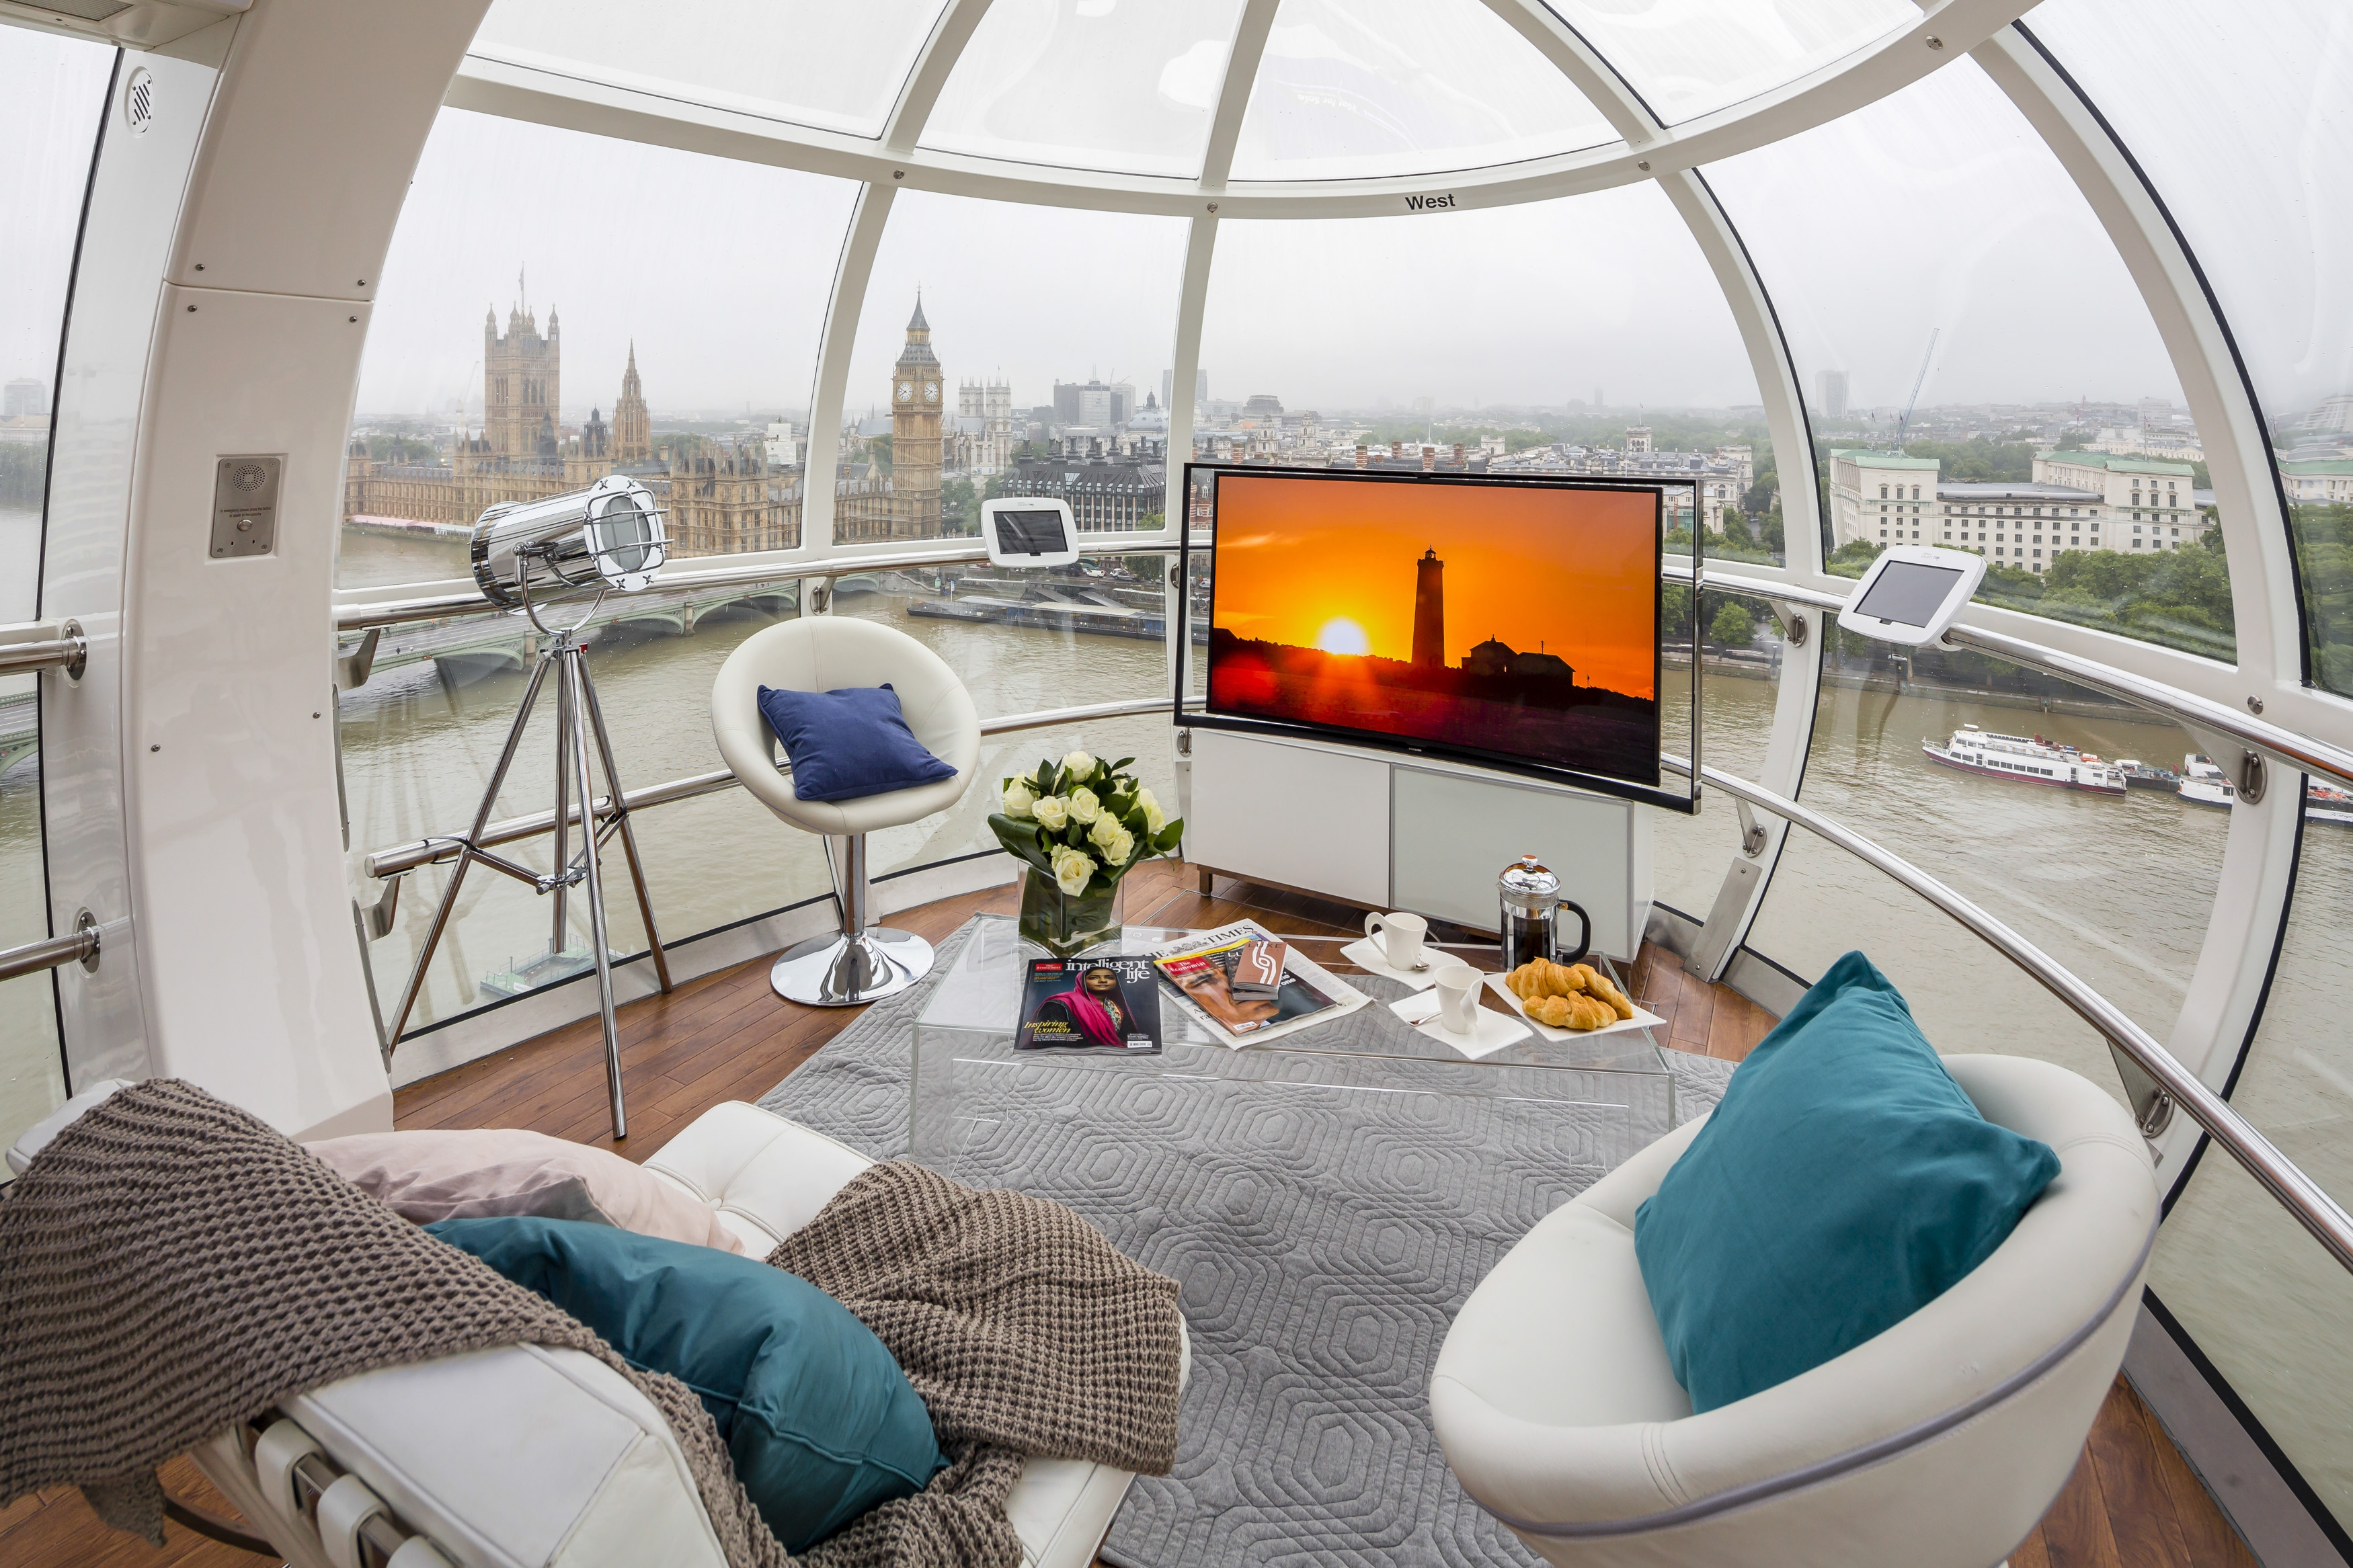 Samsung Showcases Curved Oled Tv On The London Eye Tech